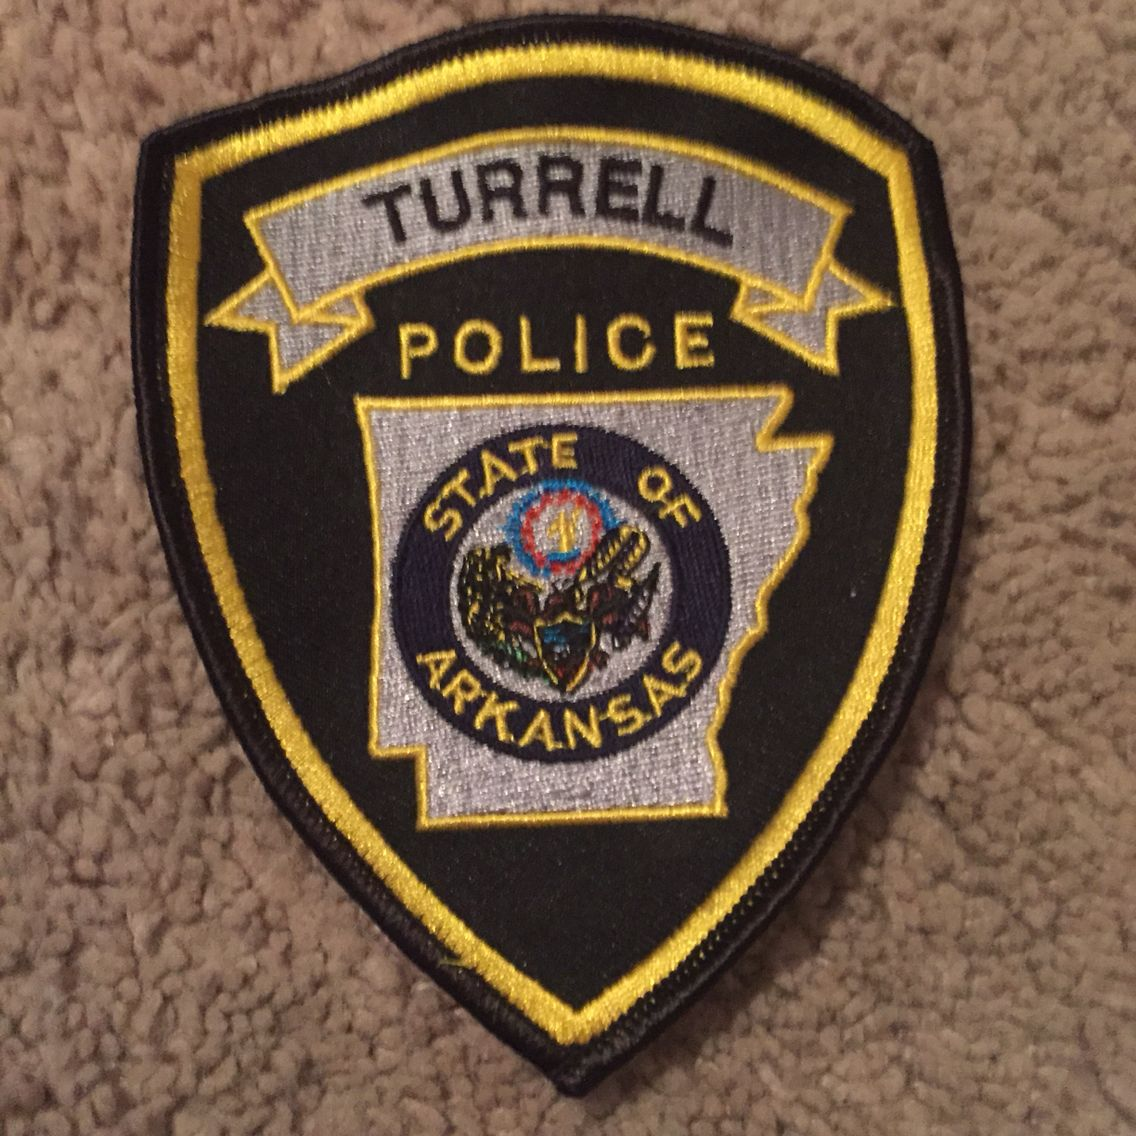 Turrell PD Police patches, Police, Police badge